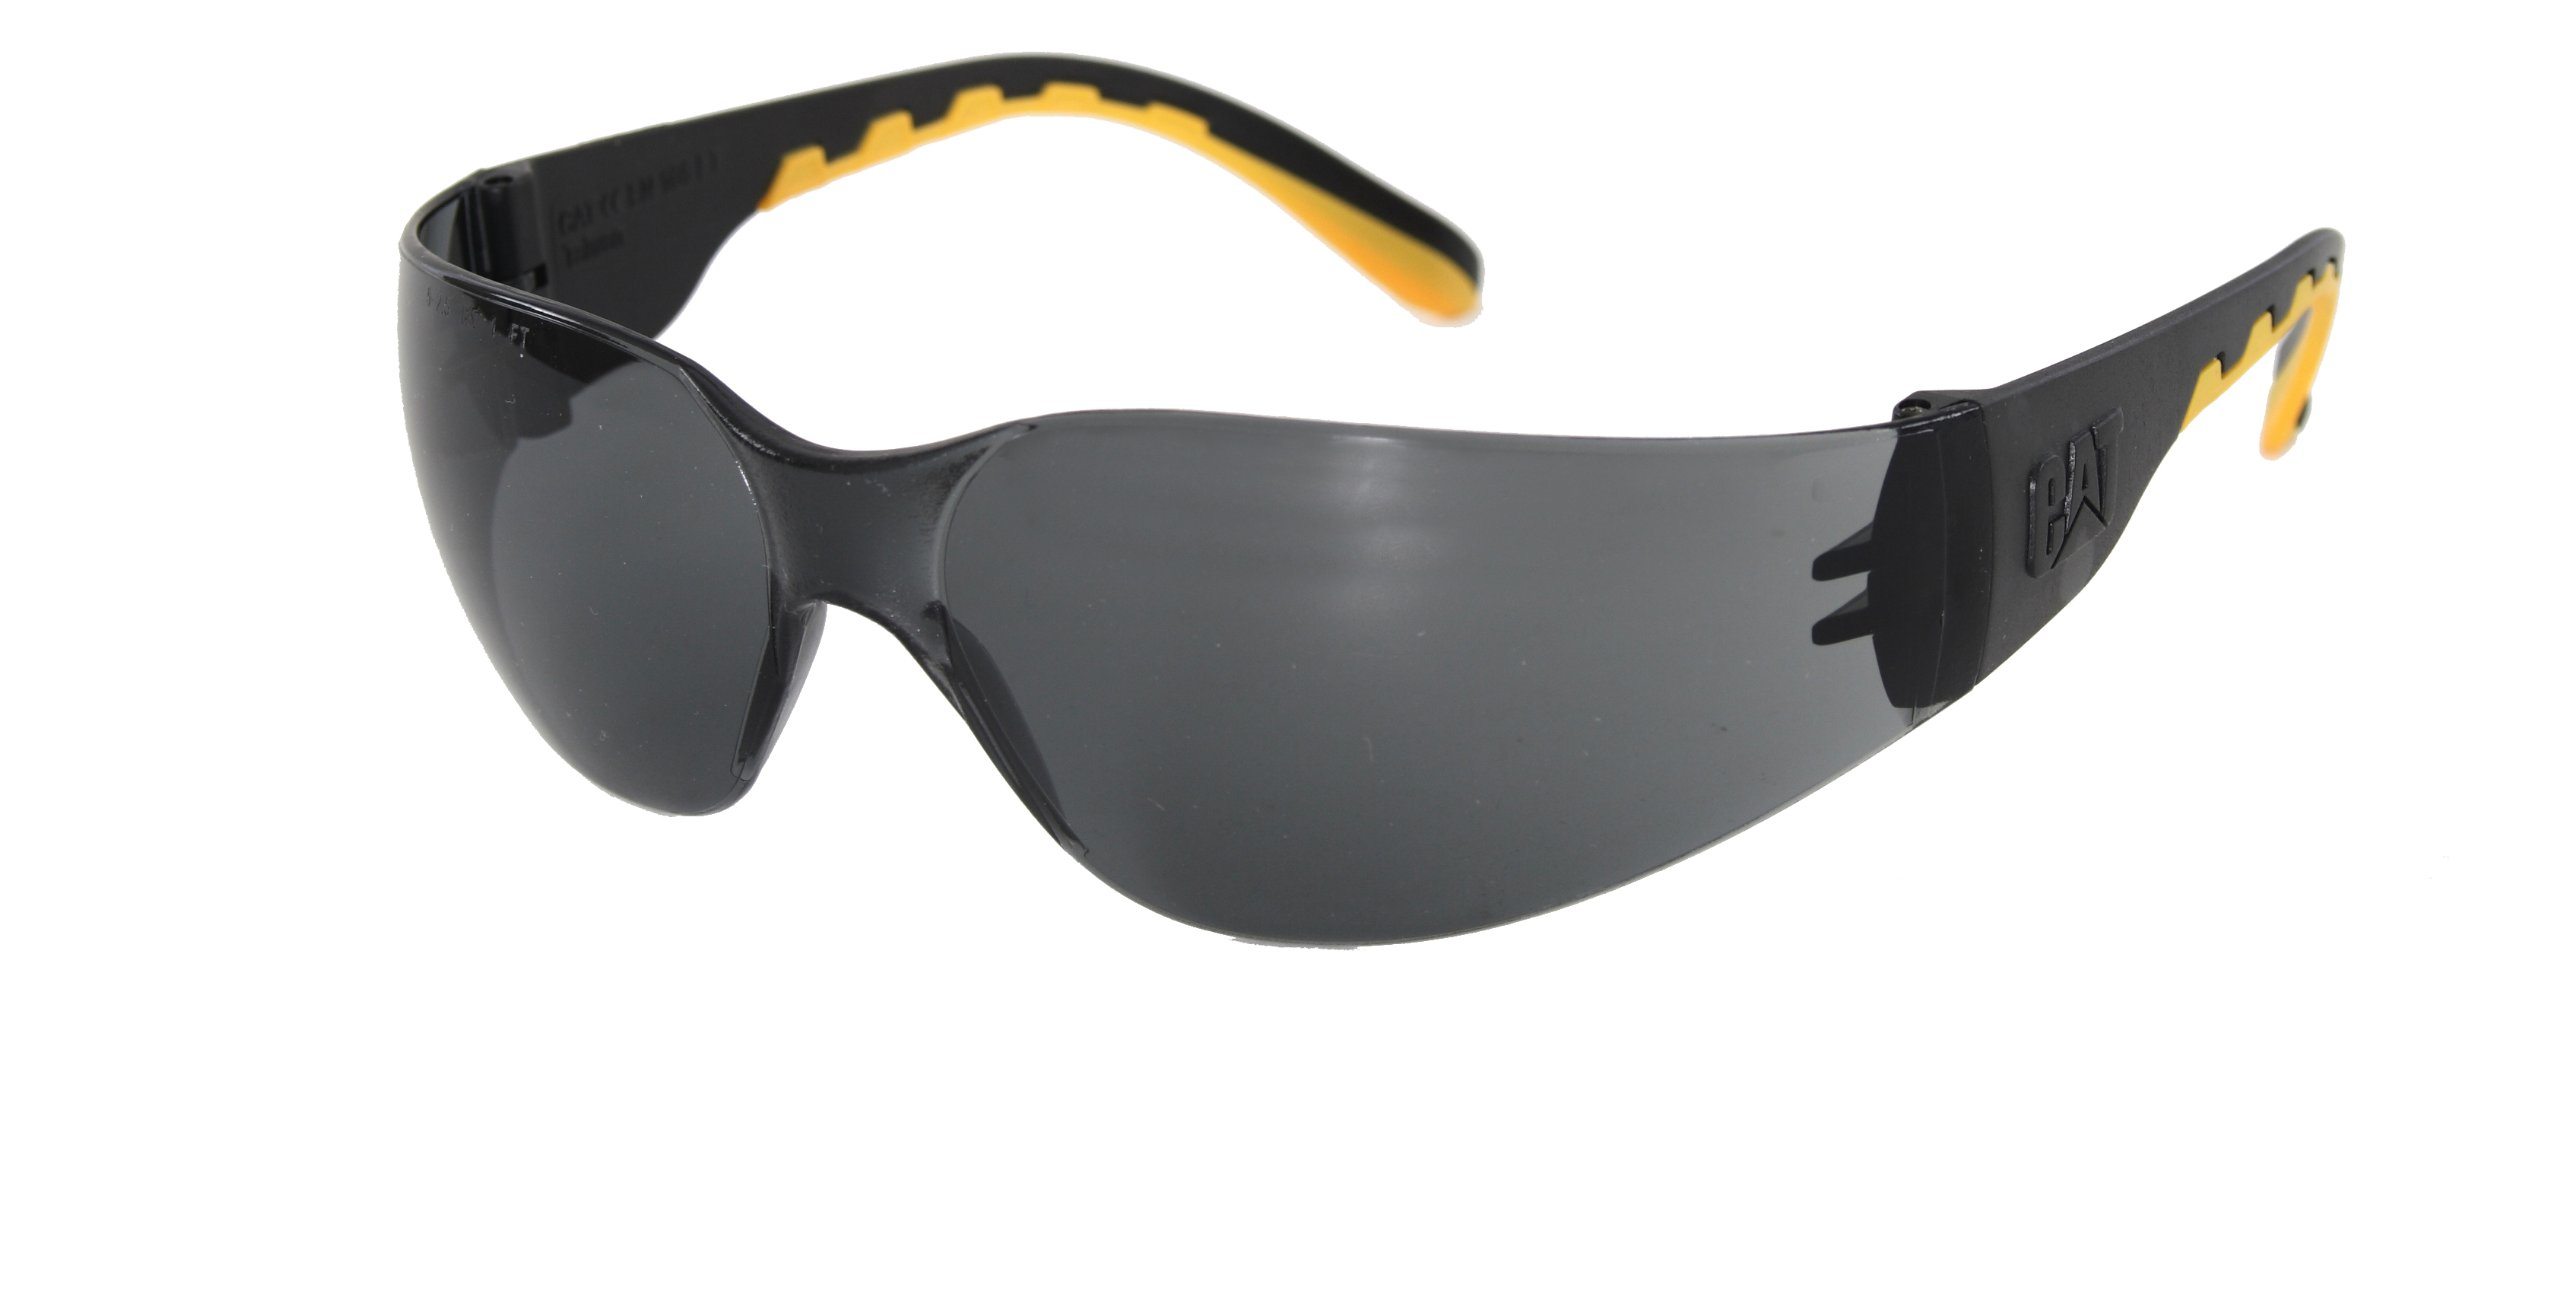 Caterpillar Anti-Fog//Scratch Comfy Work UV Protective Safety Sunglasses Glasses